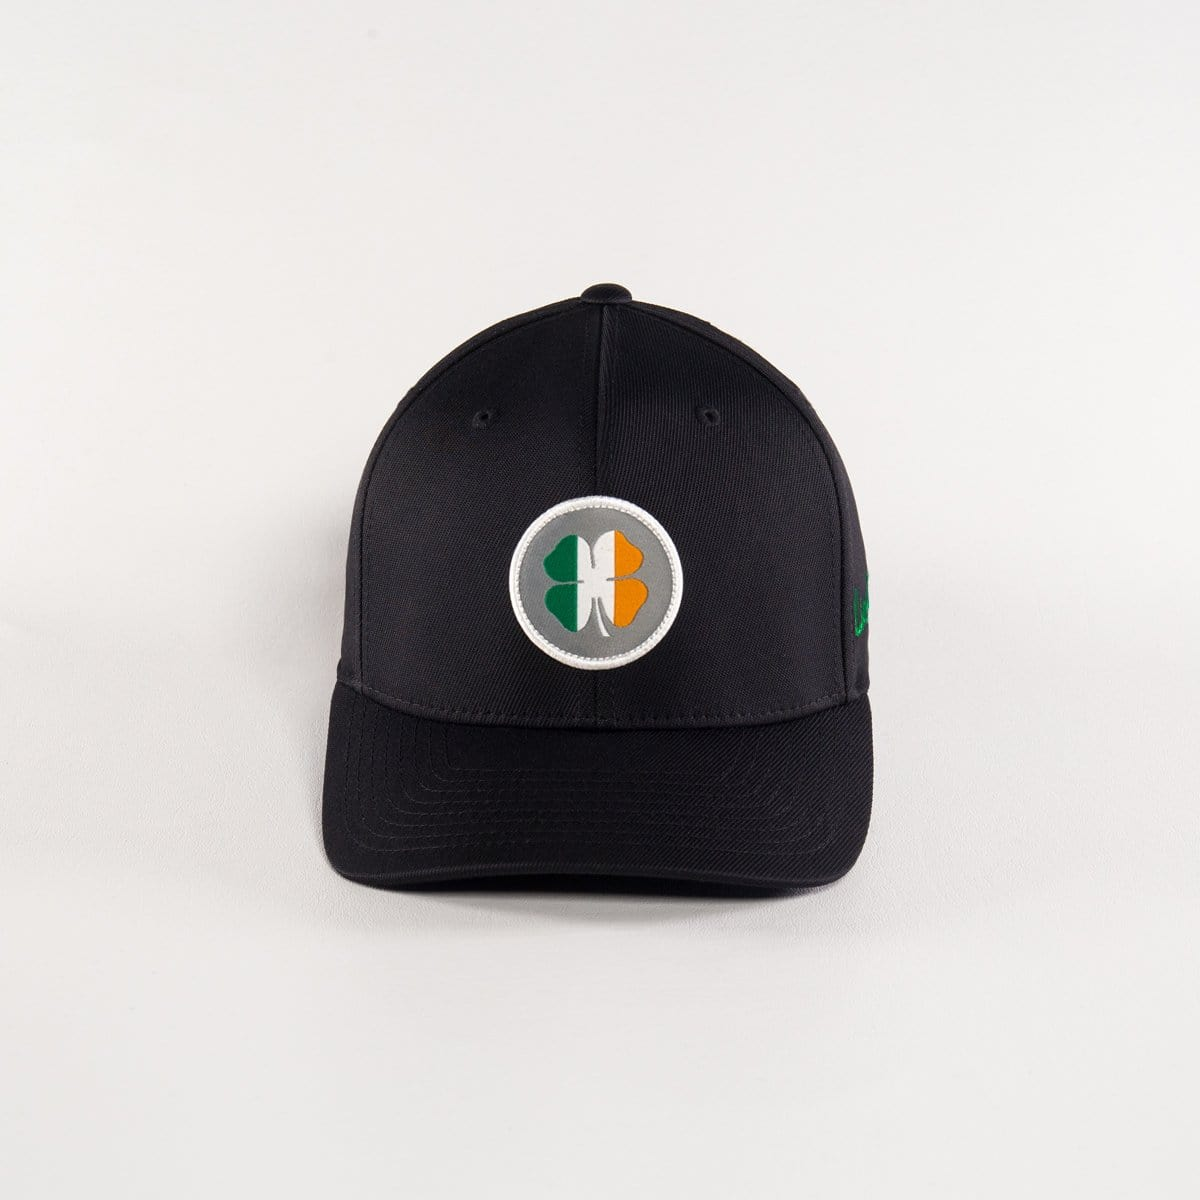 Black Clover Baseball Caps Ireland Flag Nation - Snapback equestrian team apparel online tack store mobile tack store custom farm apparel custom show stable clothing equestrian lifestyle horse show clothing riding clothes horses equestrian tack store